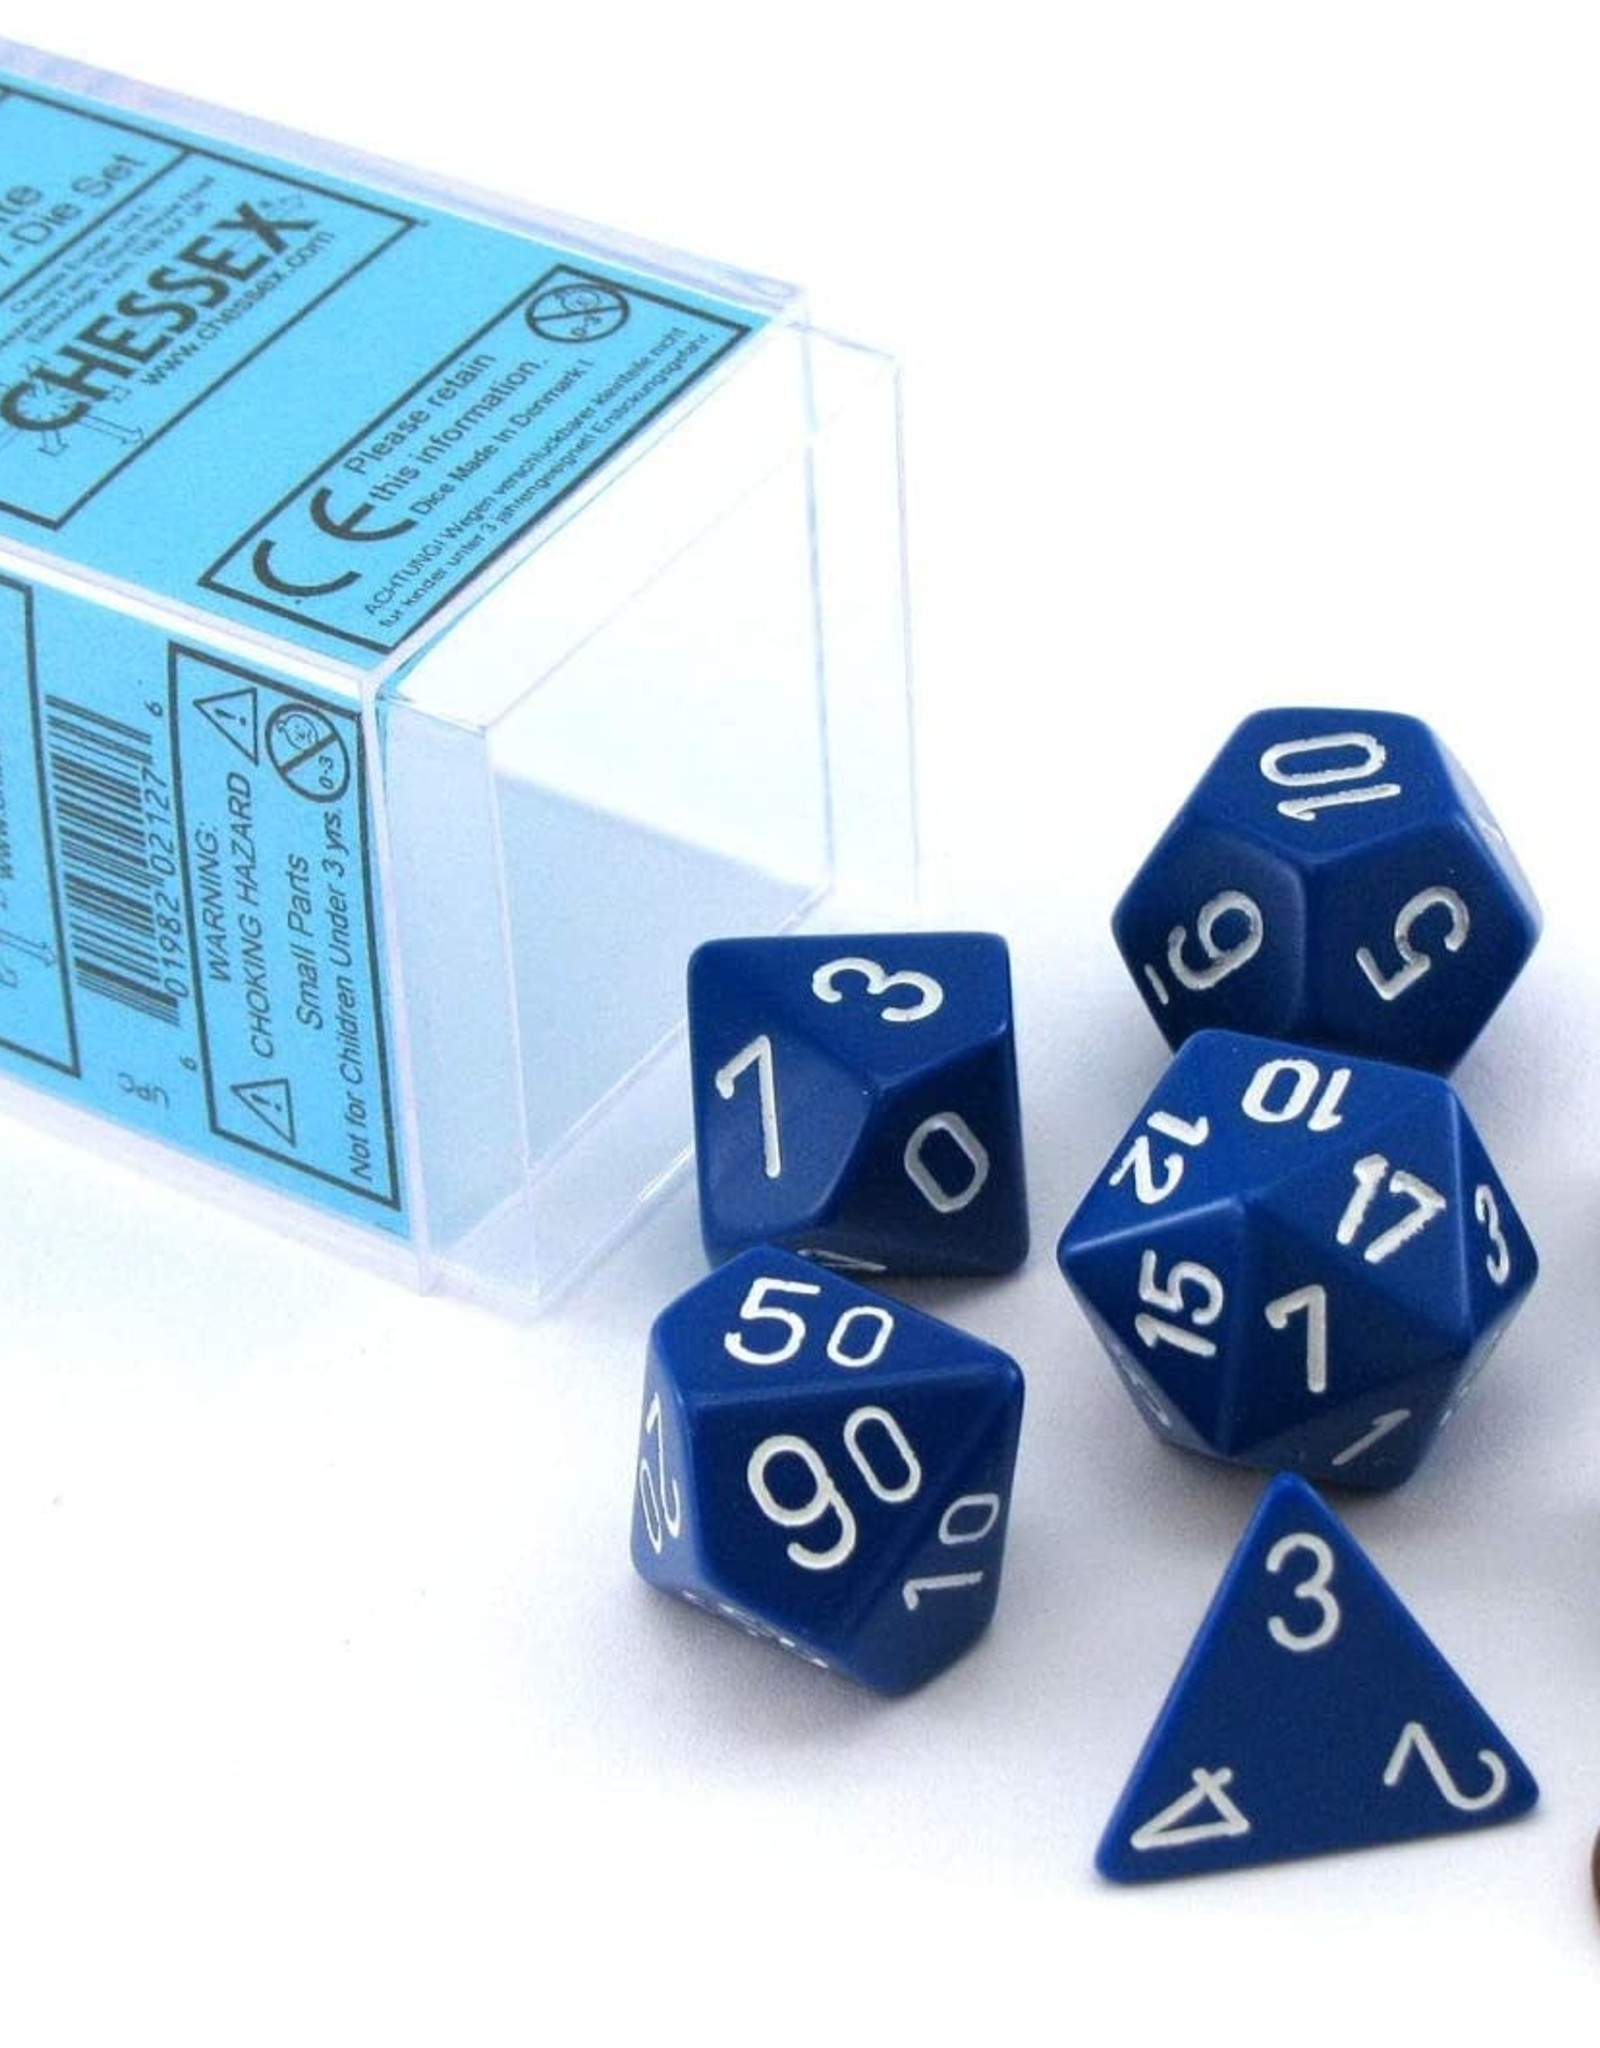 Chessex Opaque Poly 7 set: Blue w/ White